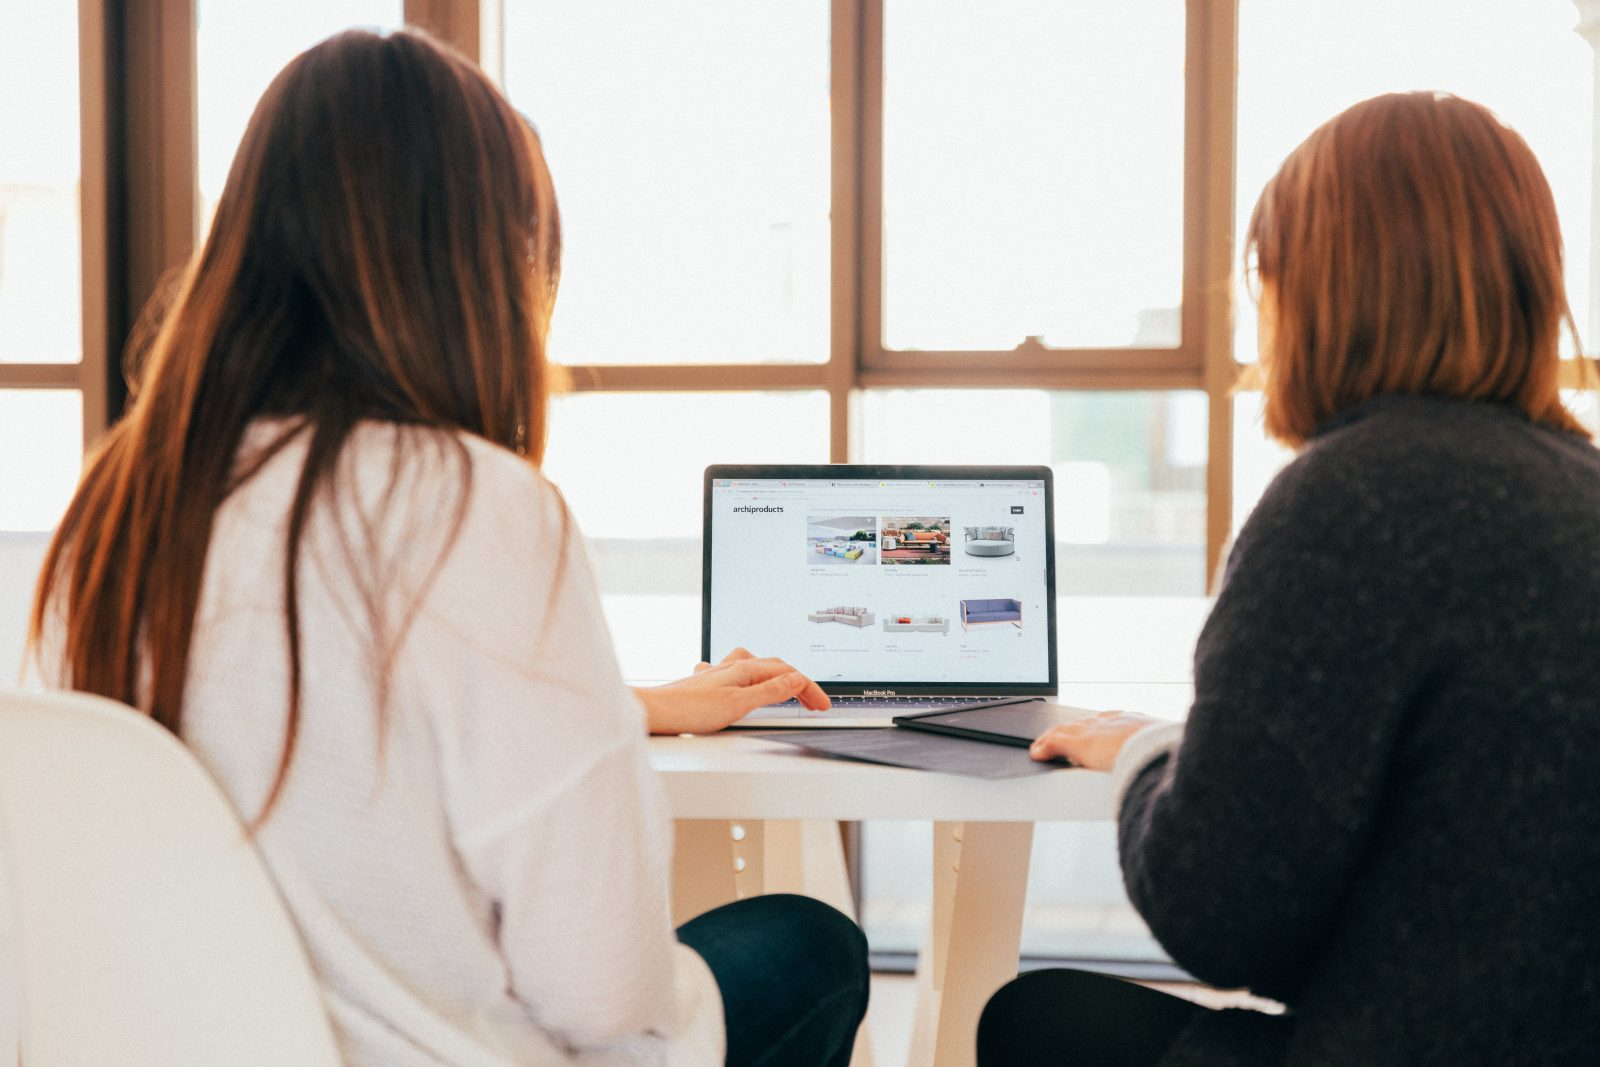 two women talking while looking at laptop computer